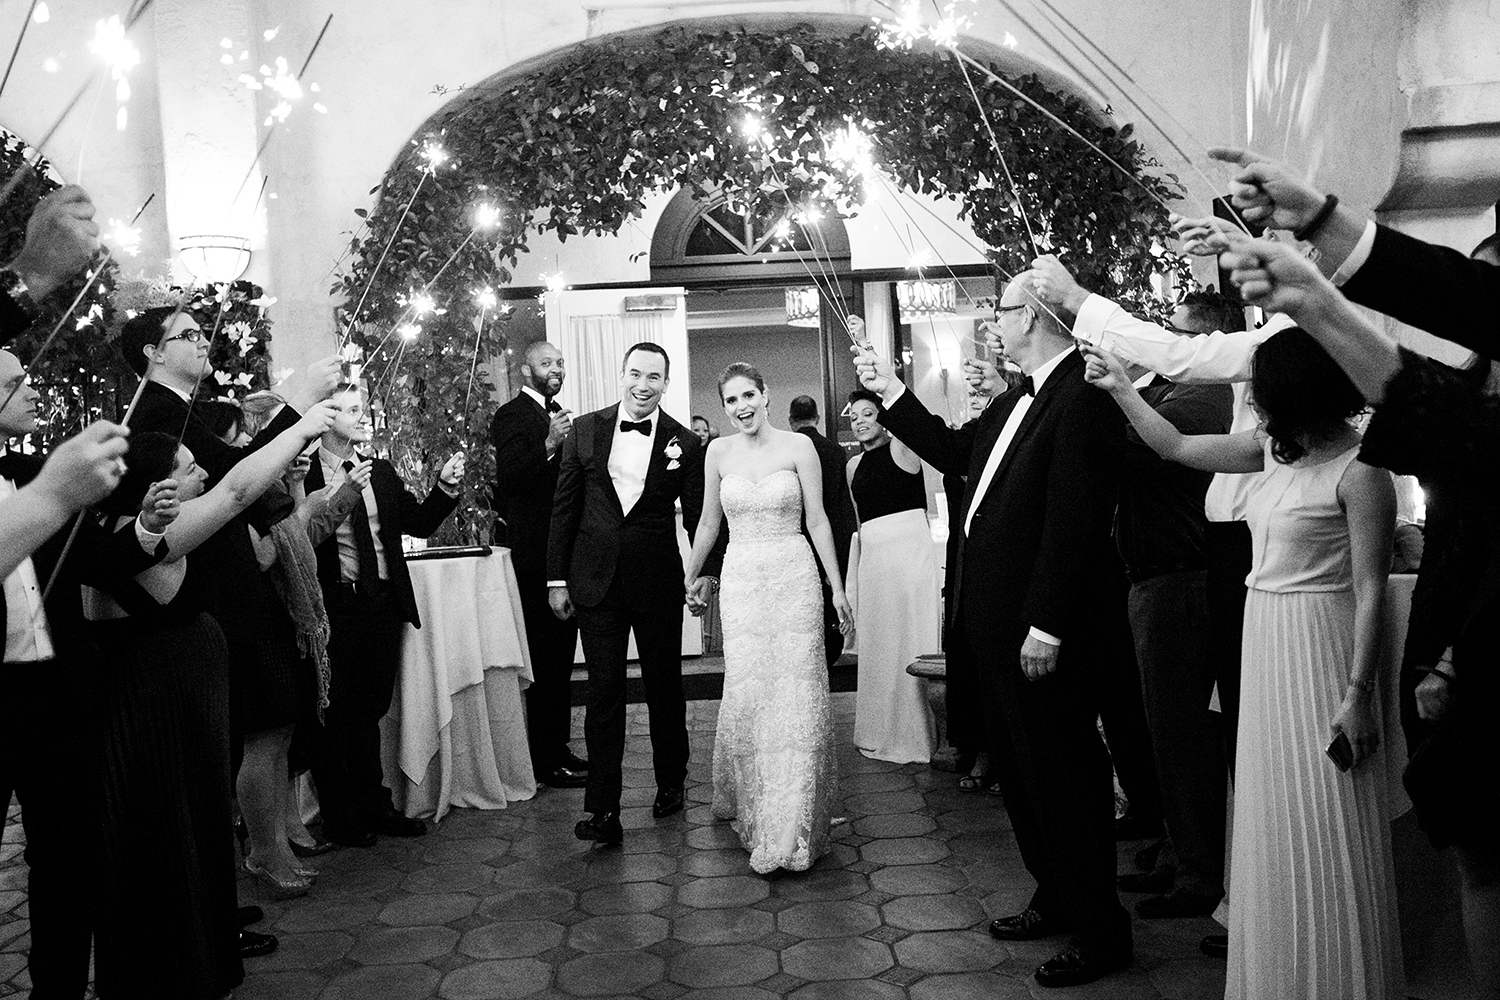 kirstyedwardsphotography.com | Garden Court Hotel Wedding | Palo Alto Wedding Photographer | Kirsty Edwards Photography